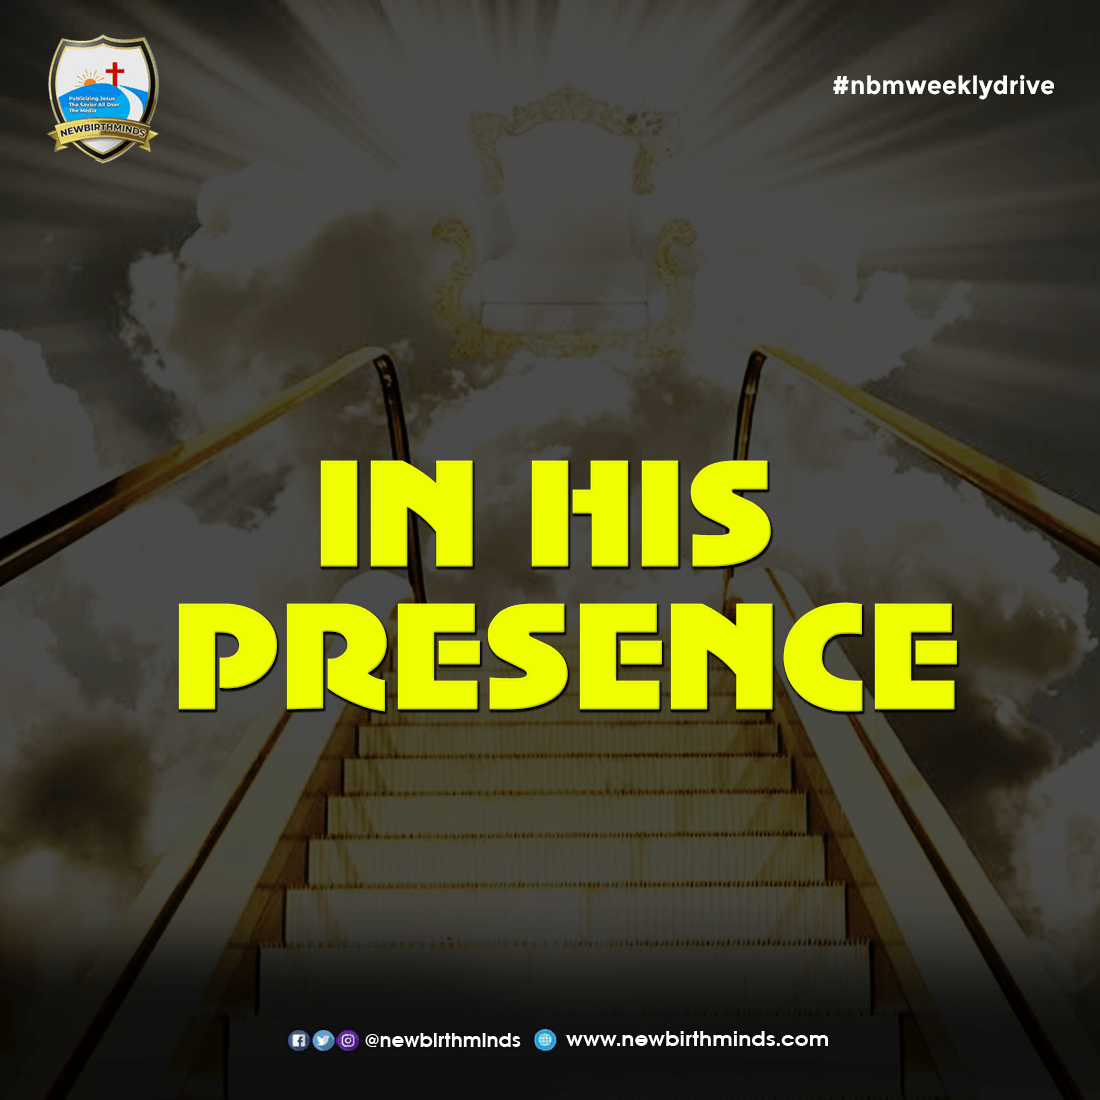 IN HIS PRESENCE – NBM Weekly Drive